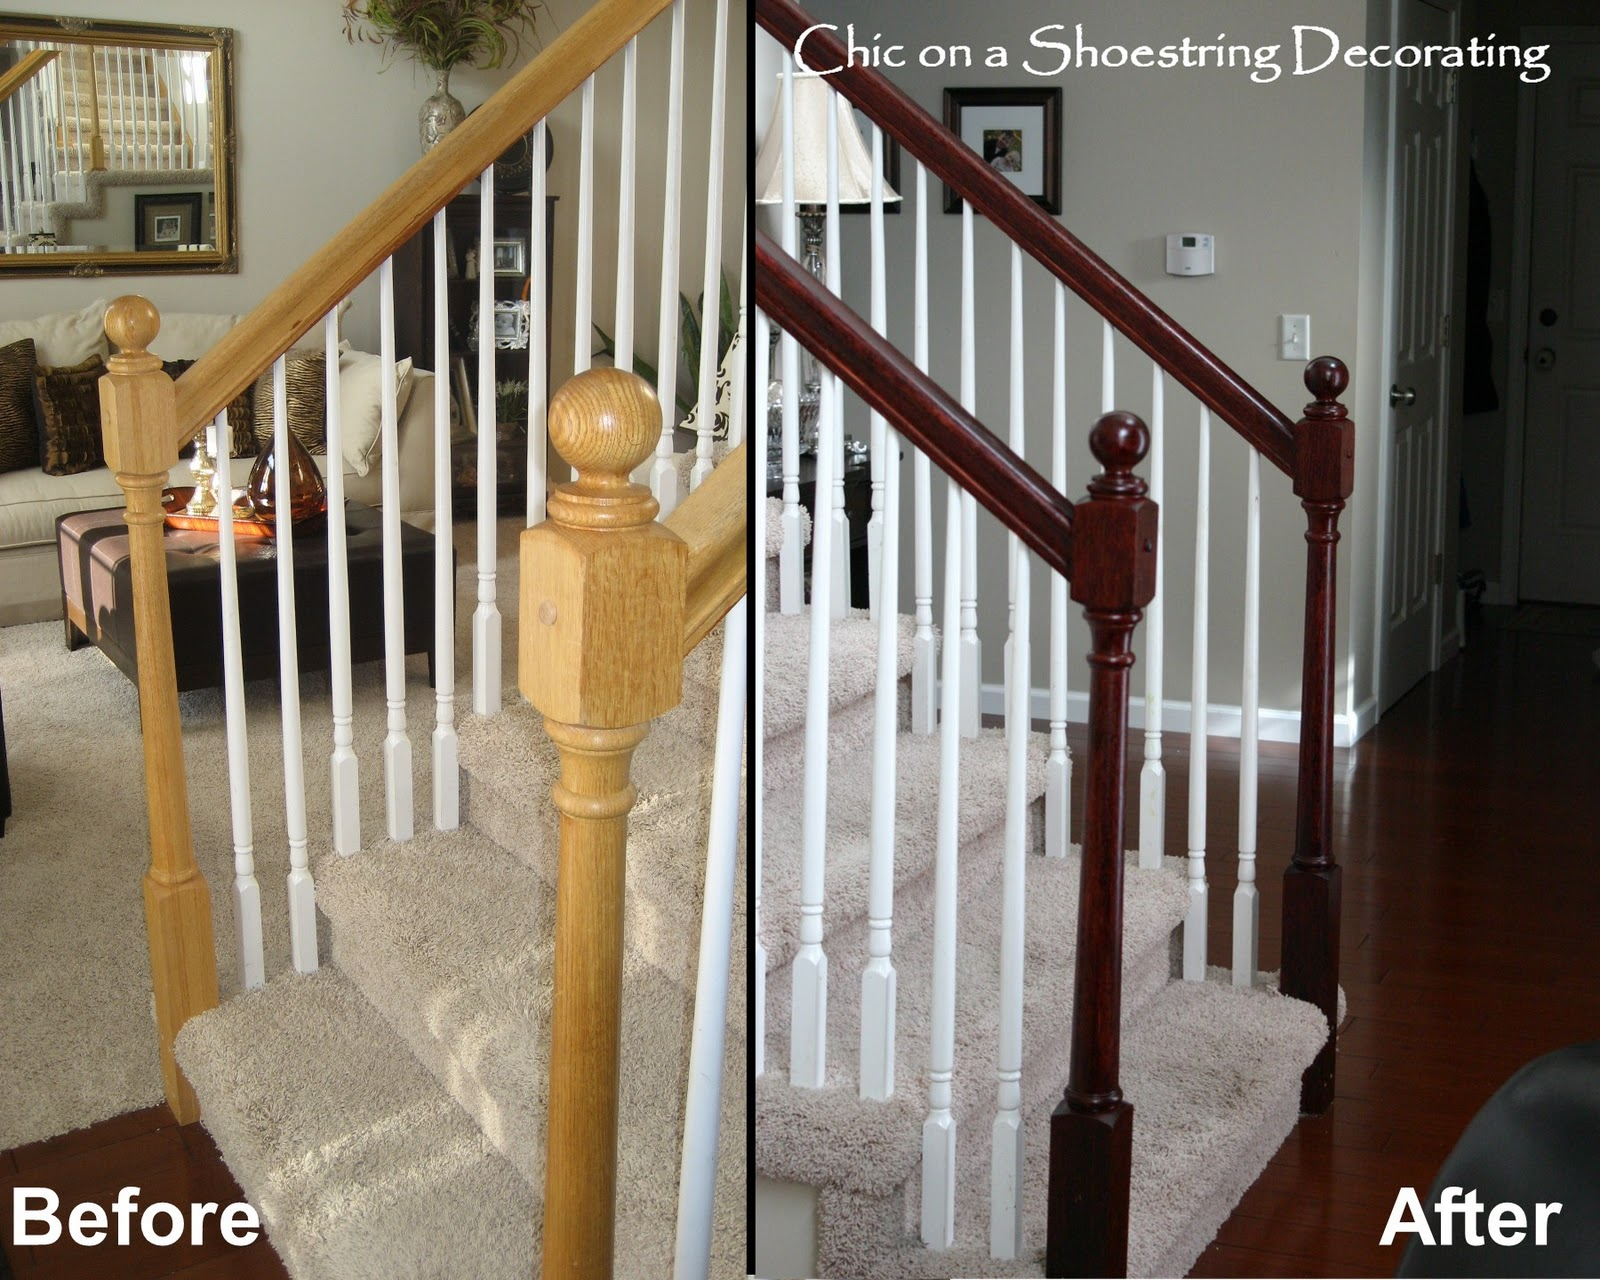 on a Shoestring Decorating: How to Stain Stair Railings